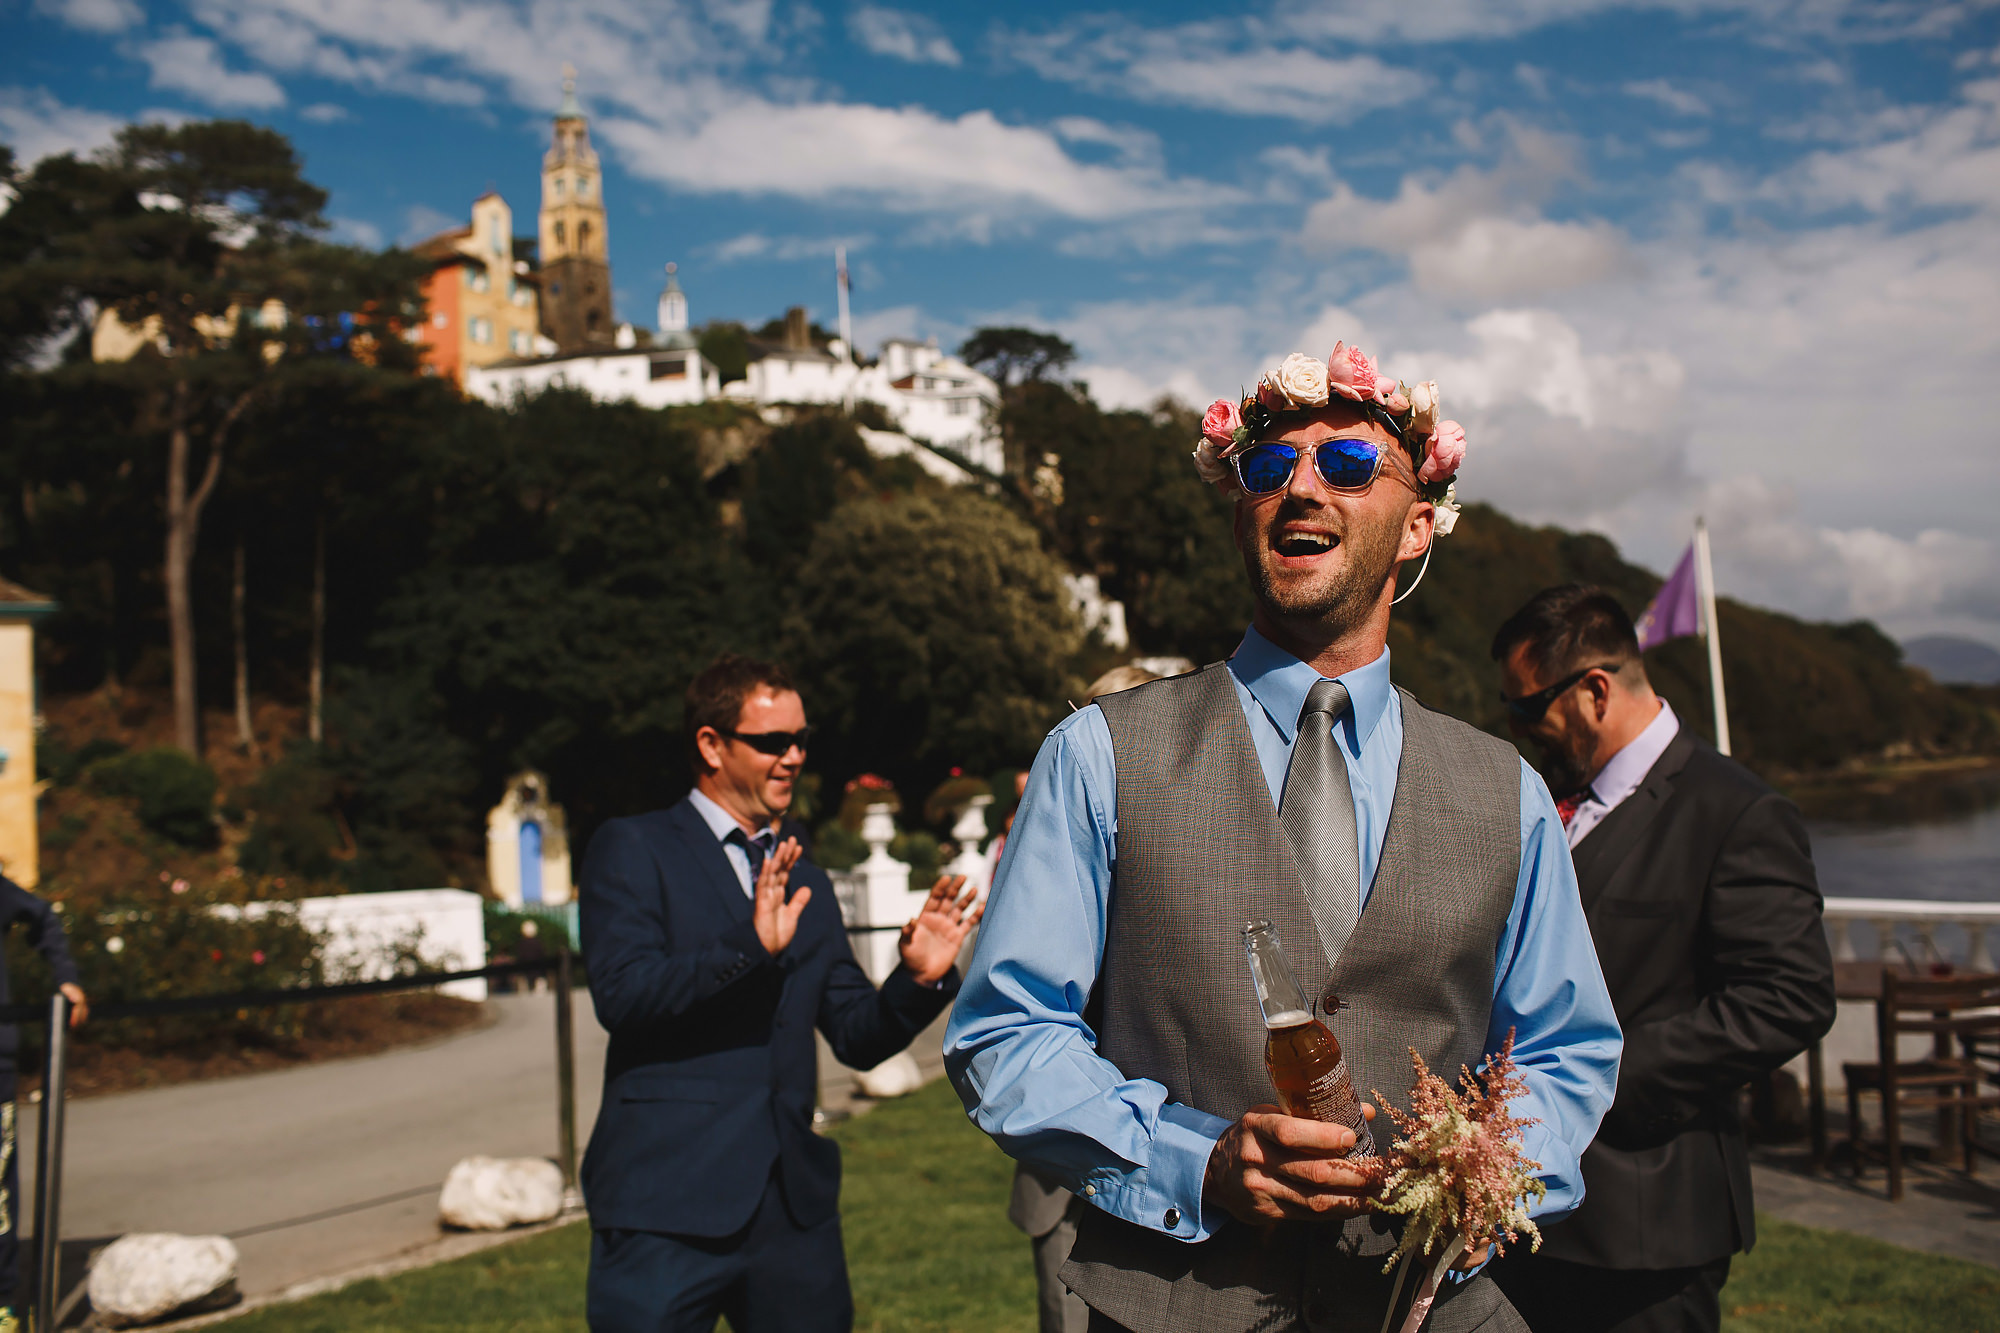 Portmeirion Wedding Photography Wales